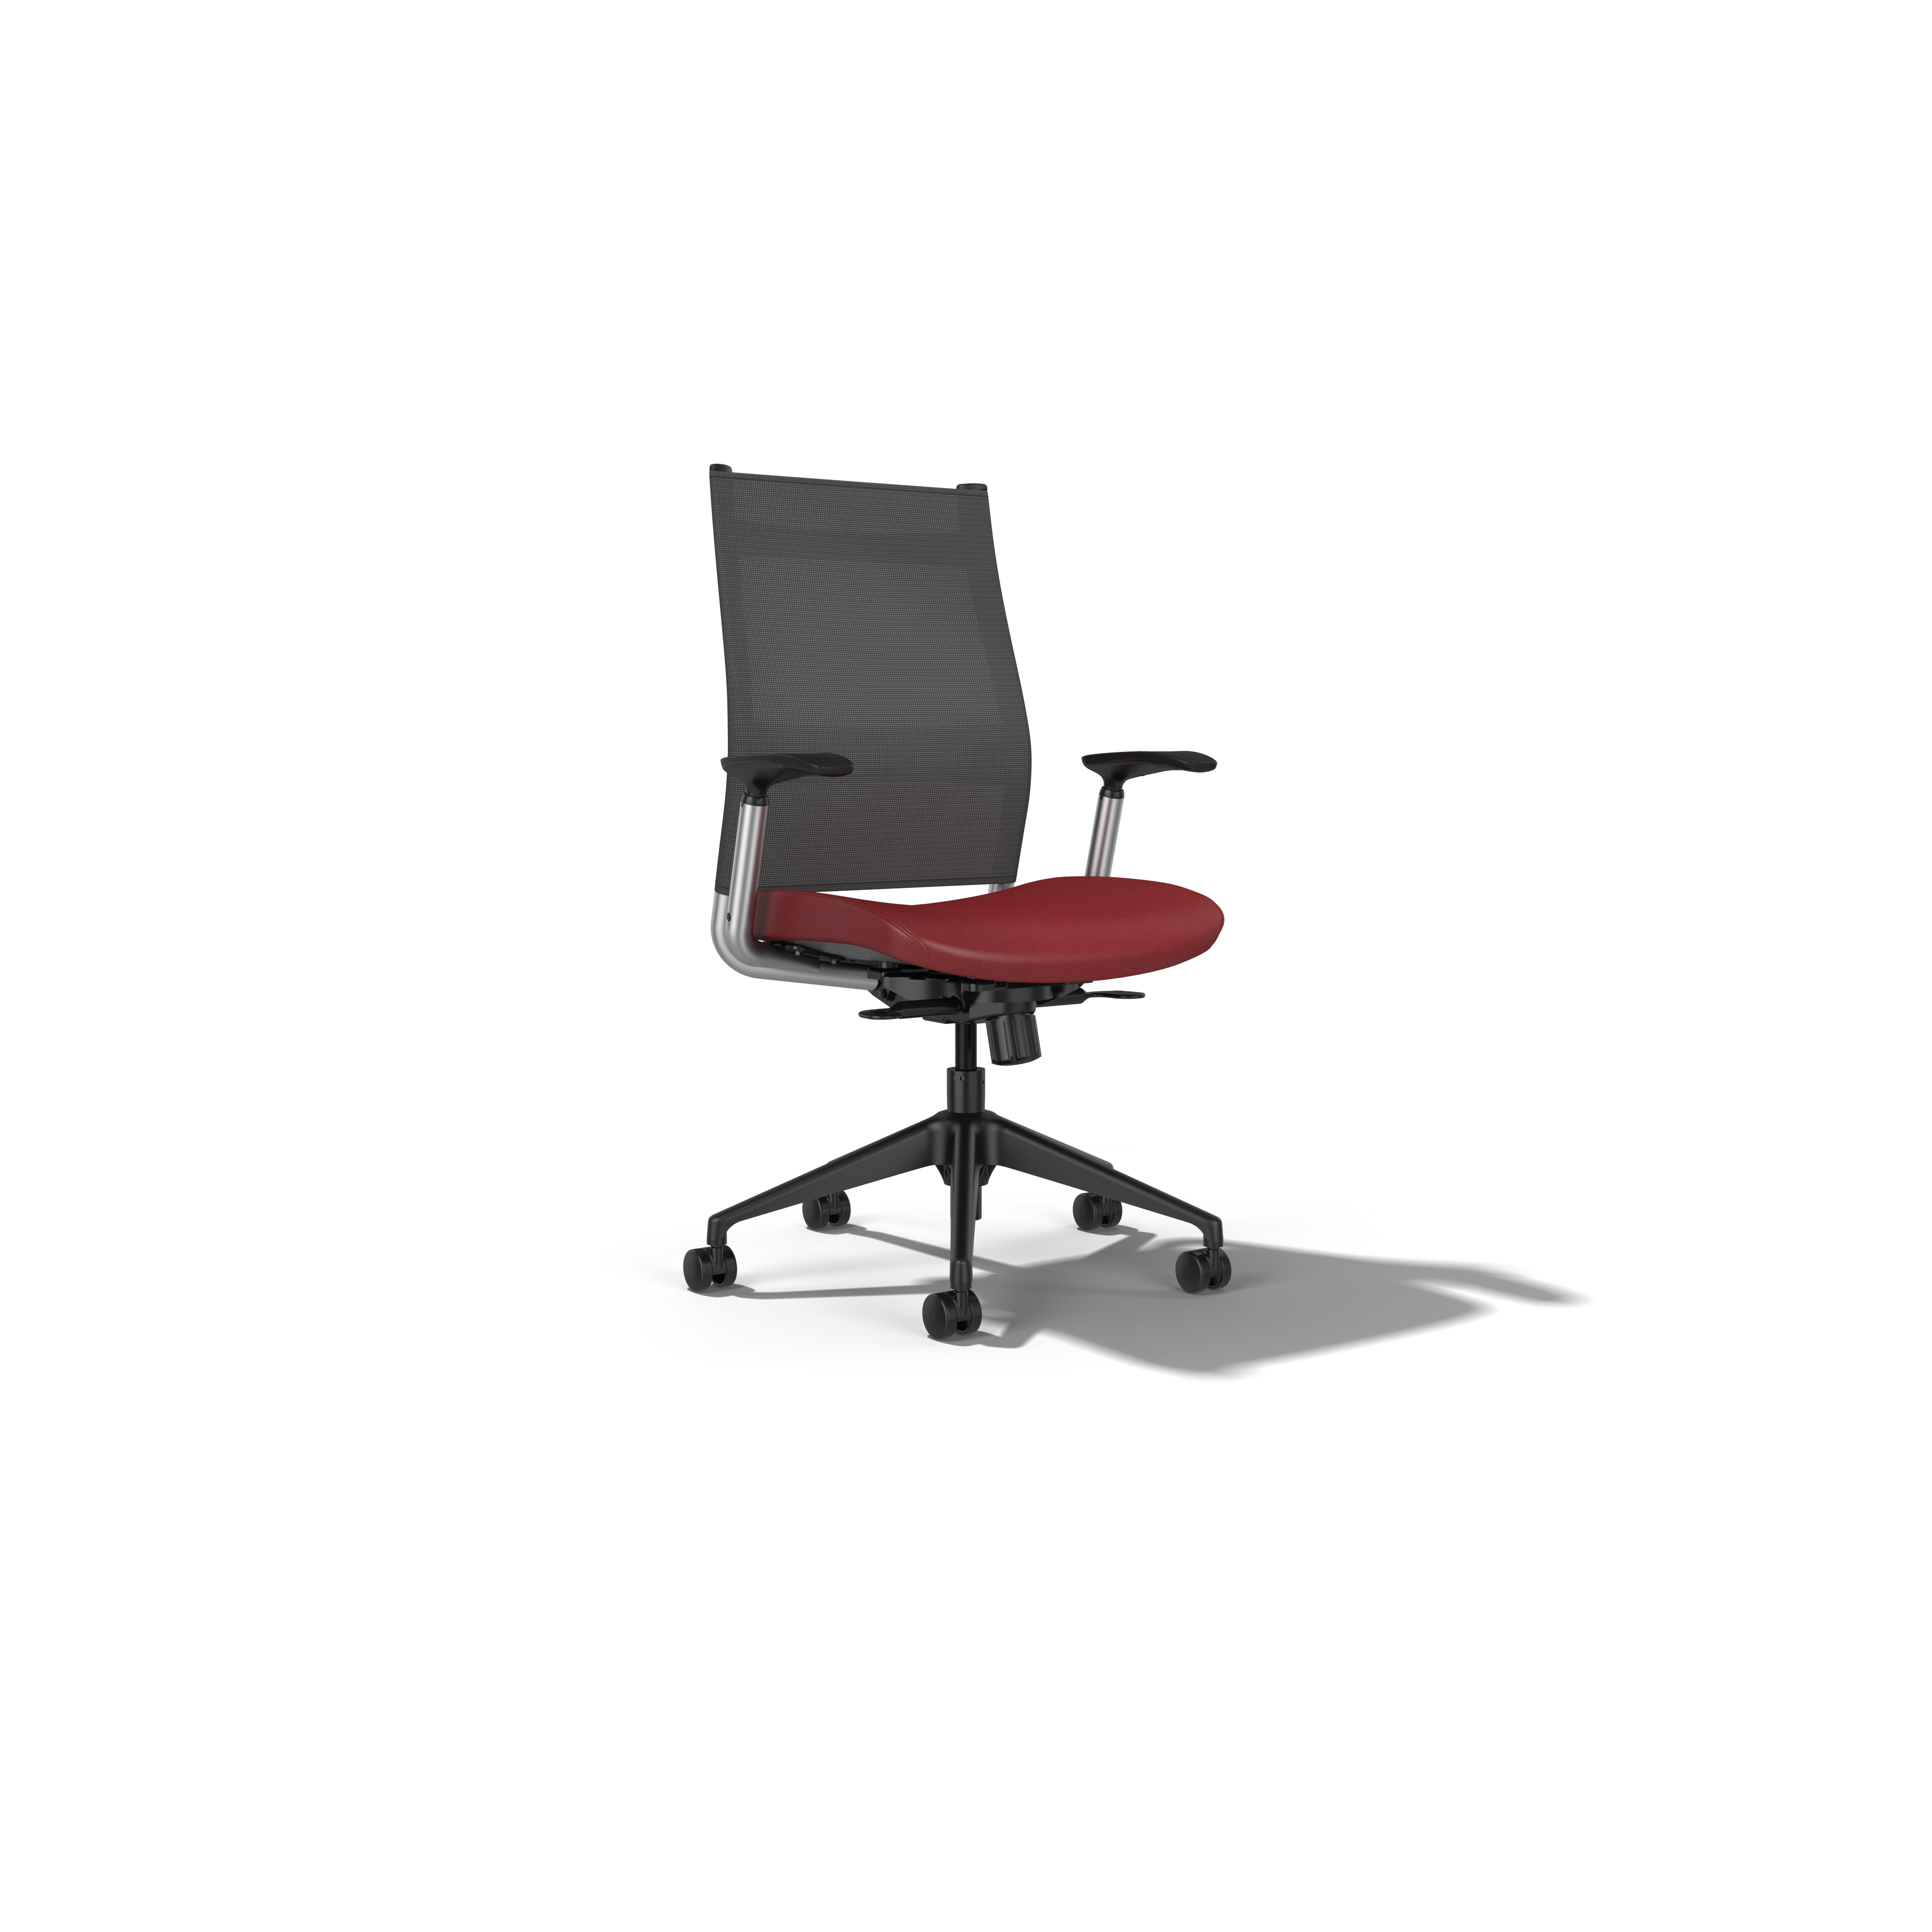 Wit™ Is the New It Chair